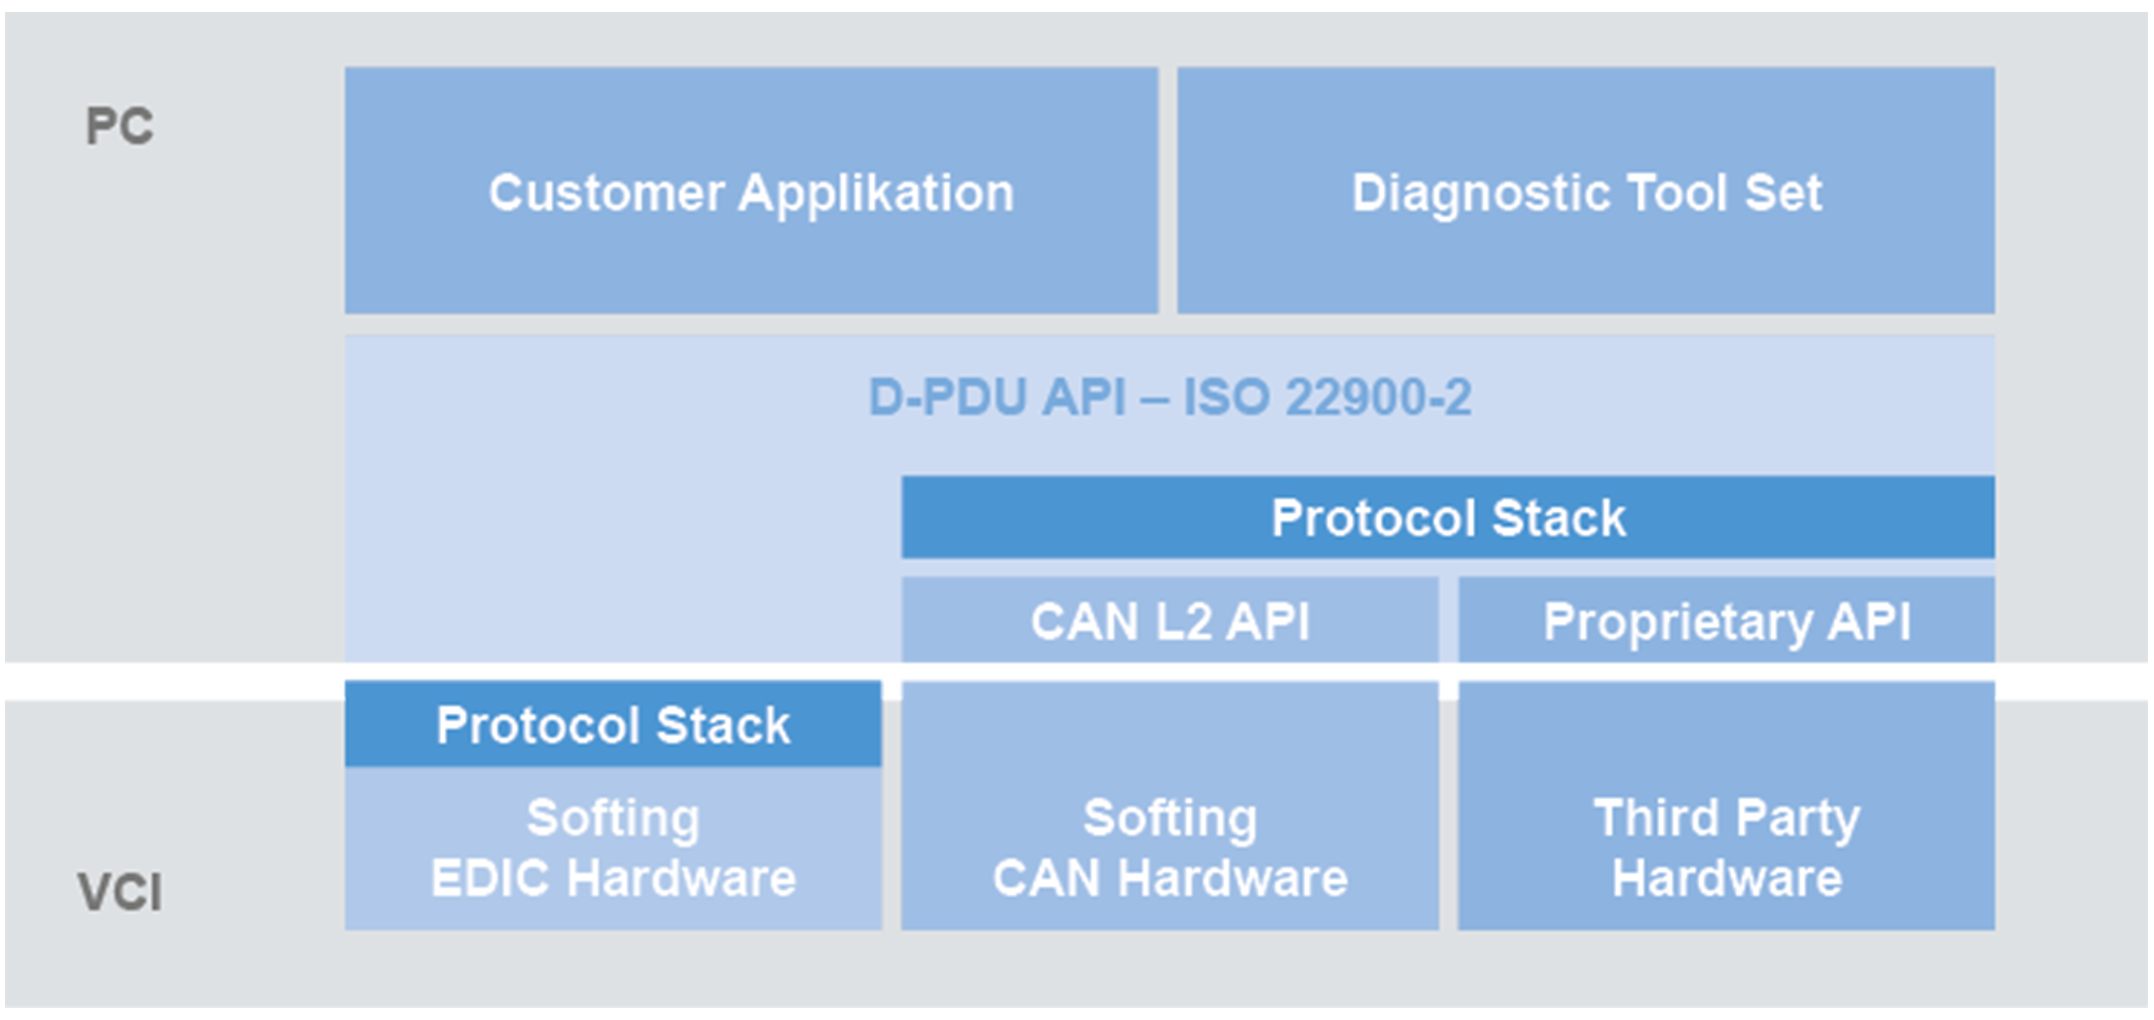 D-PDU API - Protokollsoftware für Diagnose- und Kommunikations-Interfaces